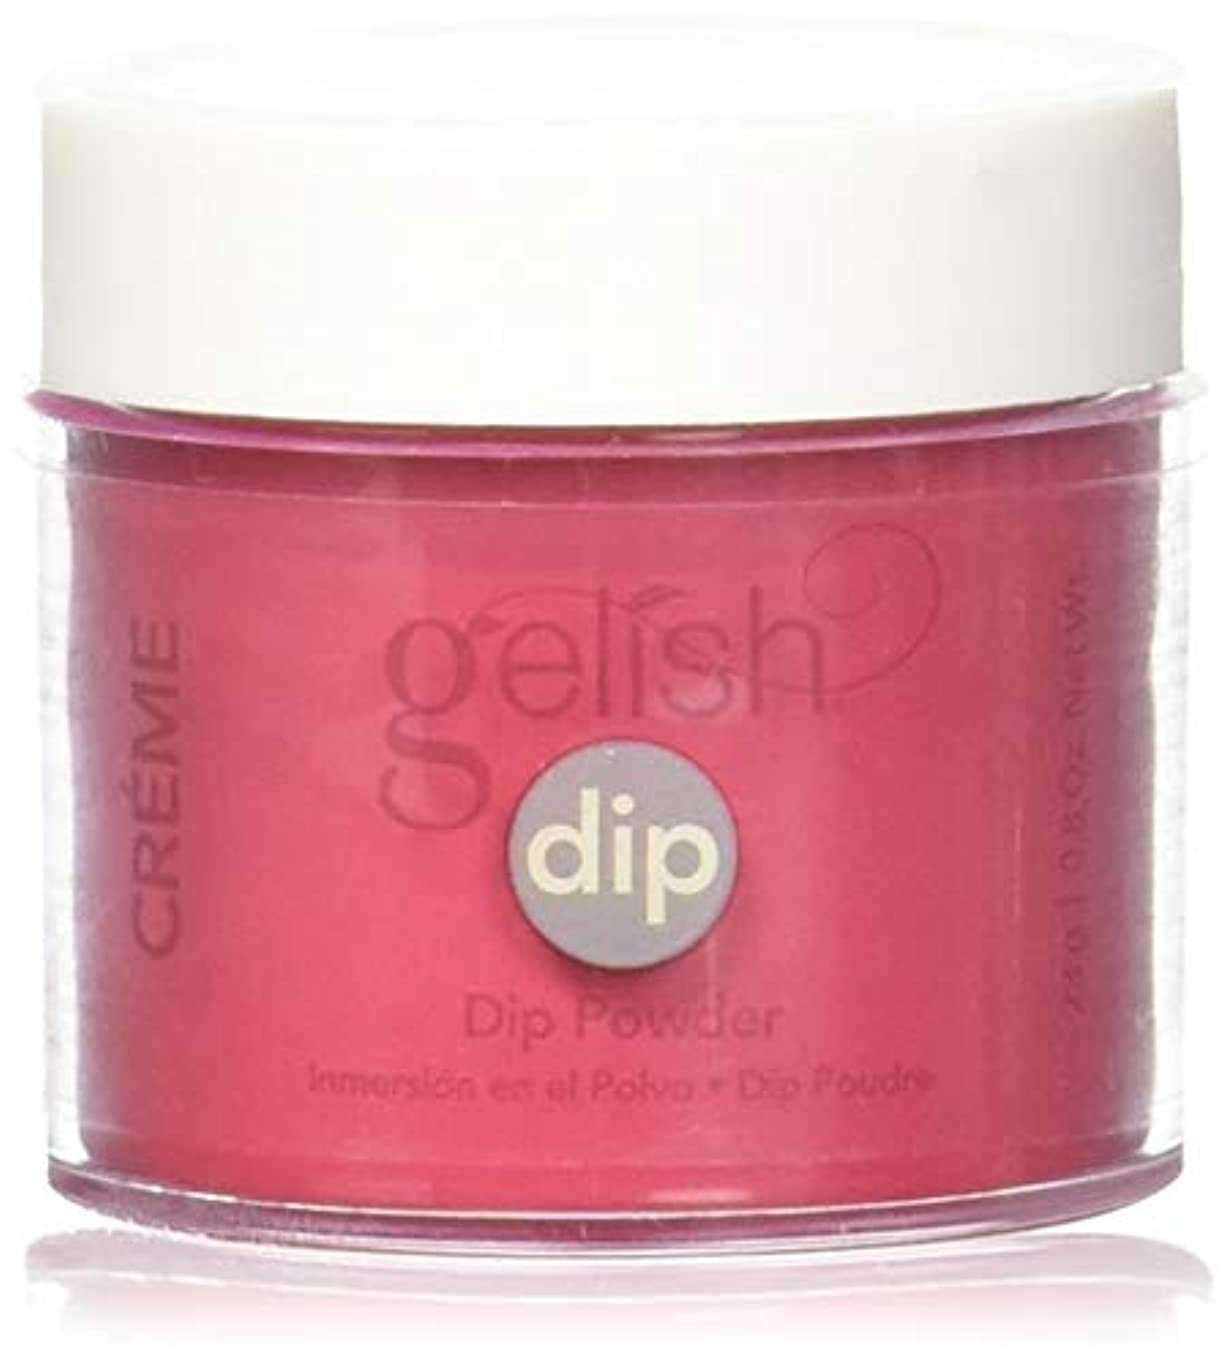 内側ゴミ箱肺炎Harmony Gelish - Acrylic Dip Powder - Hot Rod Red - 23g / 0.8oz